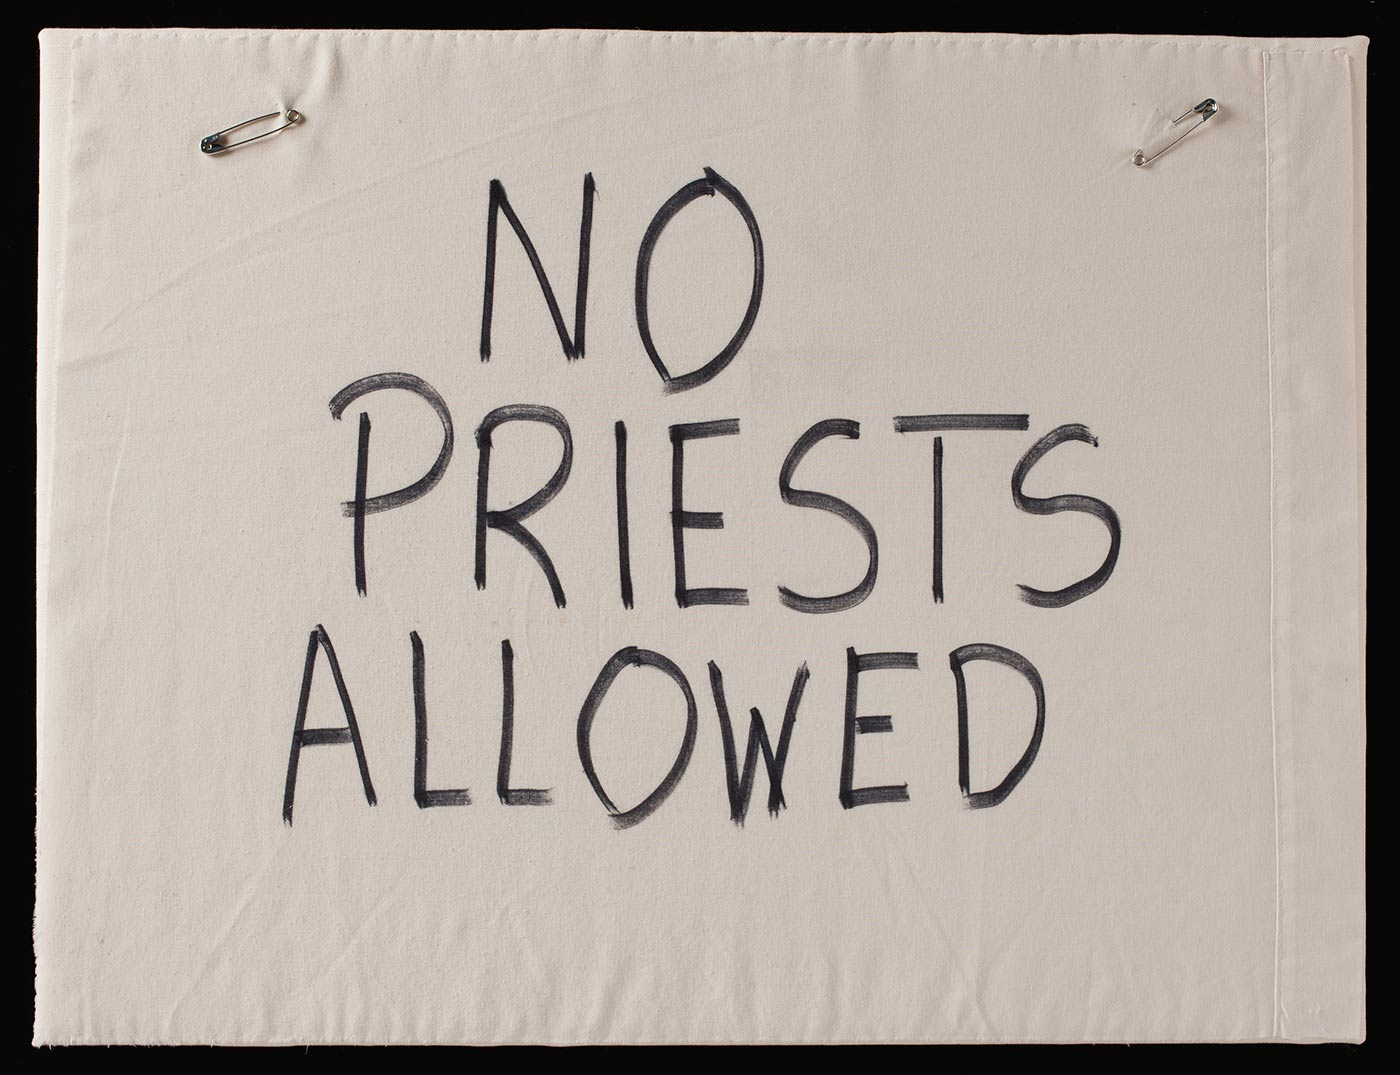 A photograph of a piece of off-white cloth with 'NO PRIESTS ALLOWED' handwritten in black capital letters. Safety pins are attached to the top corners. - click to view larger image